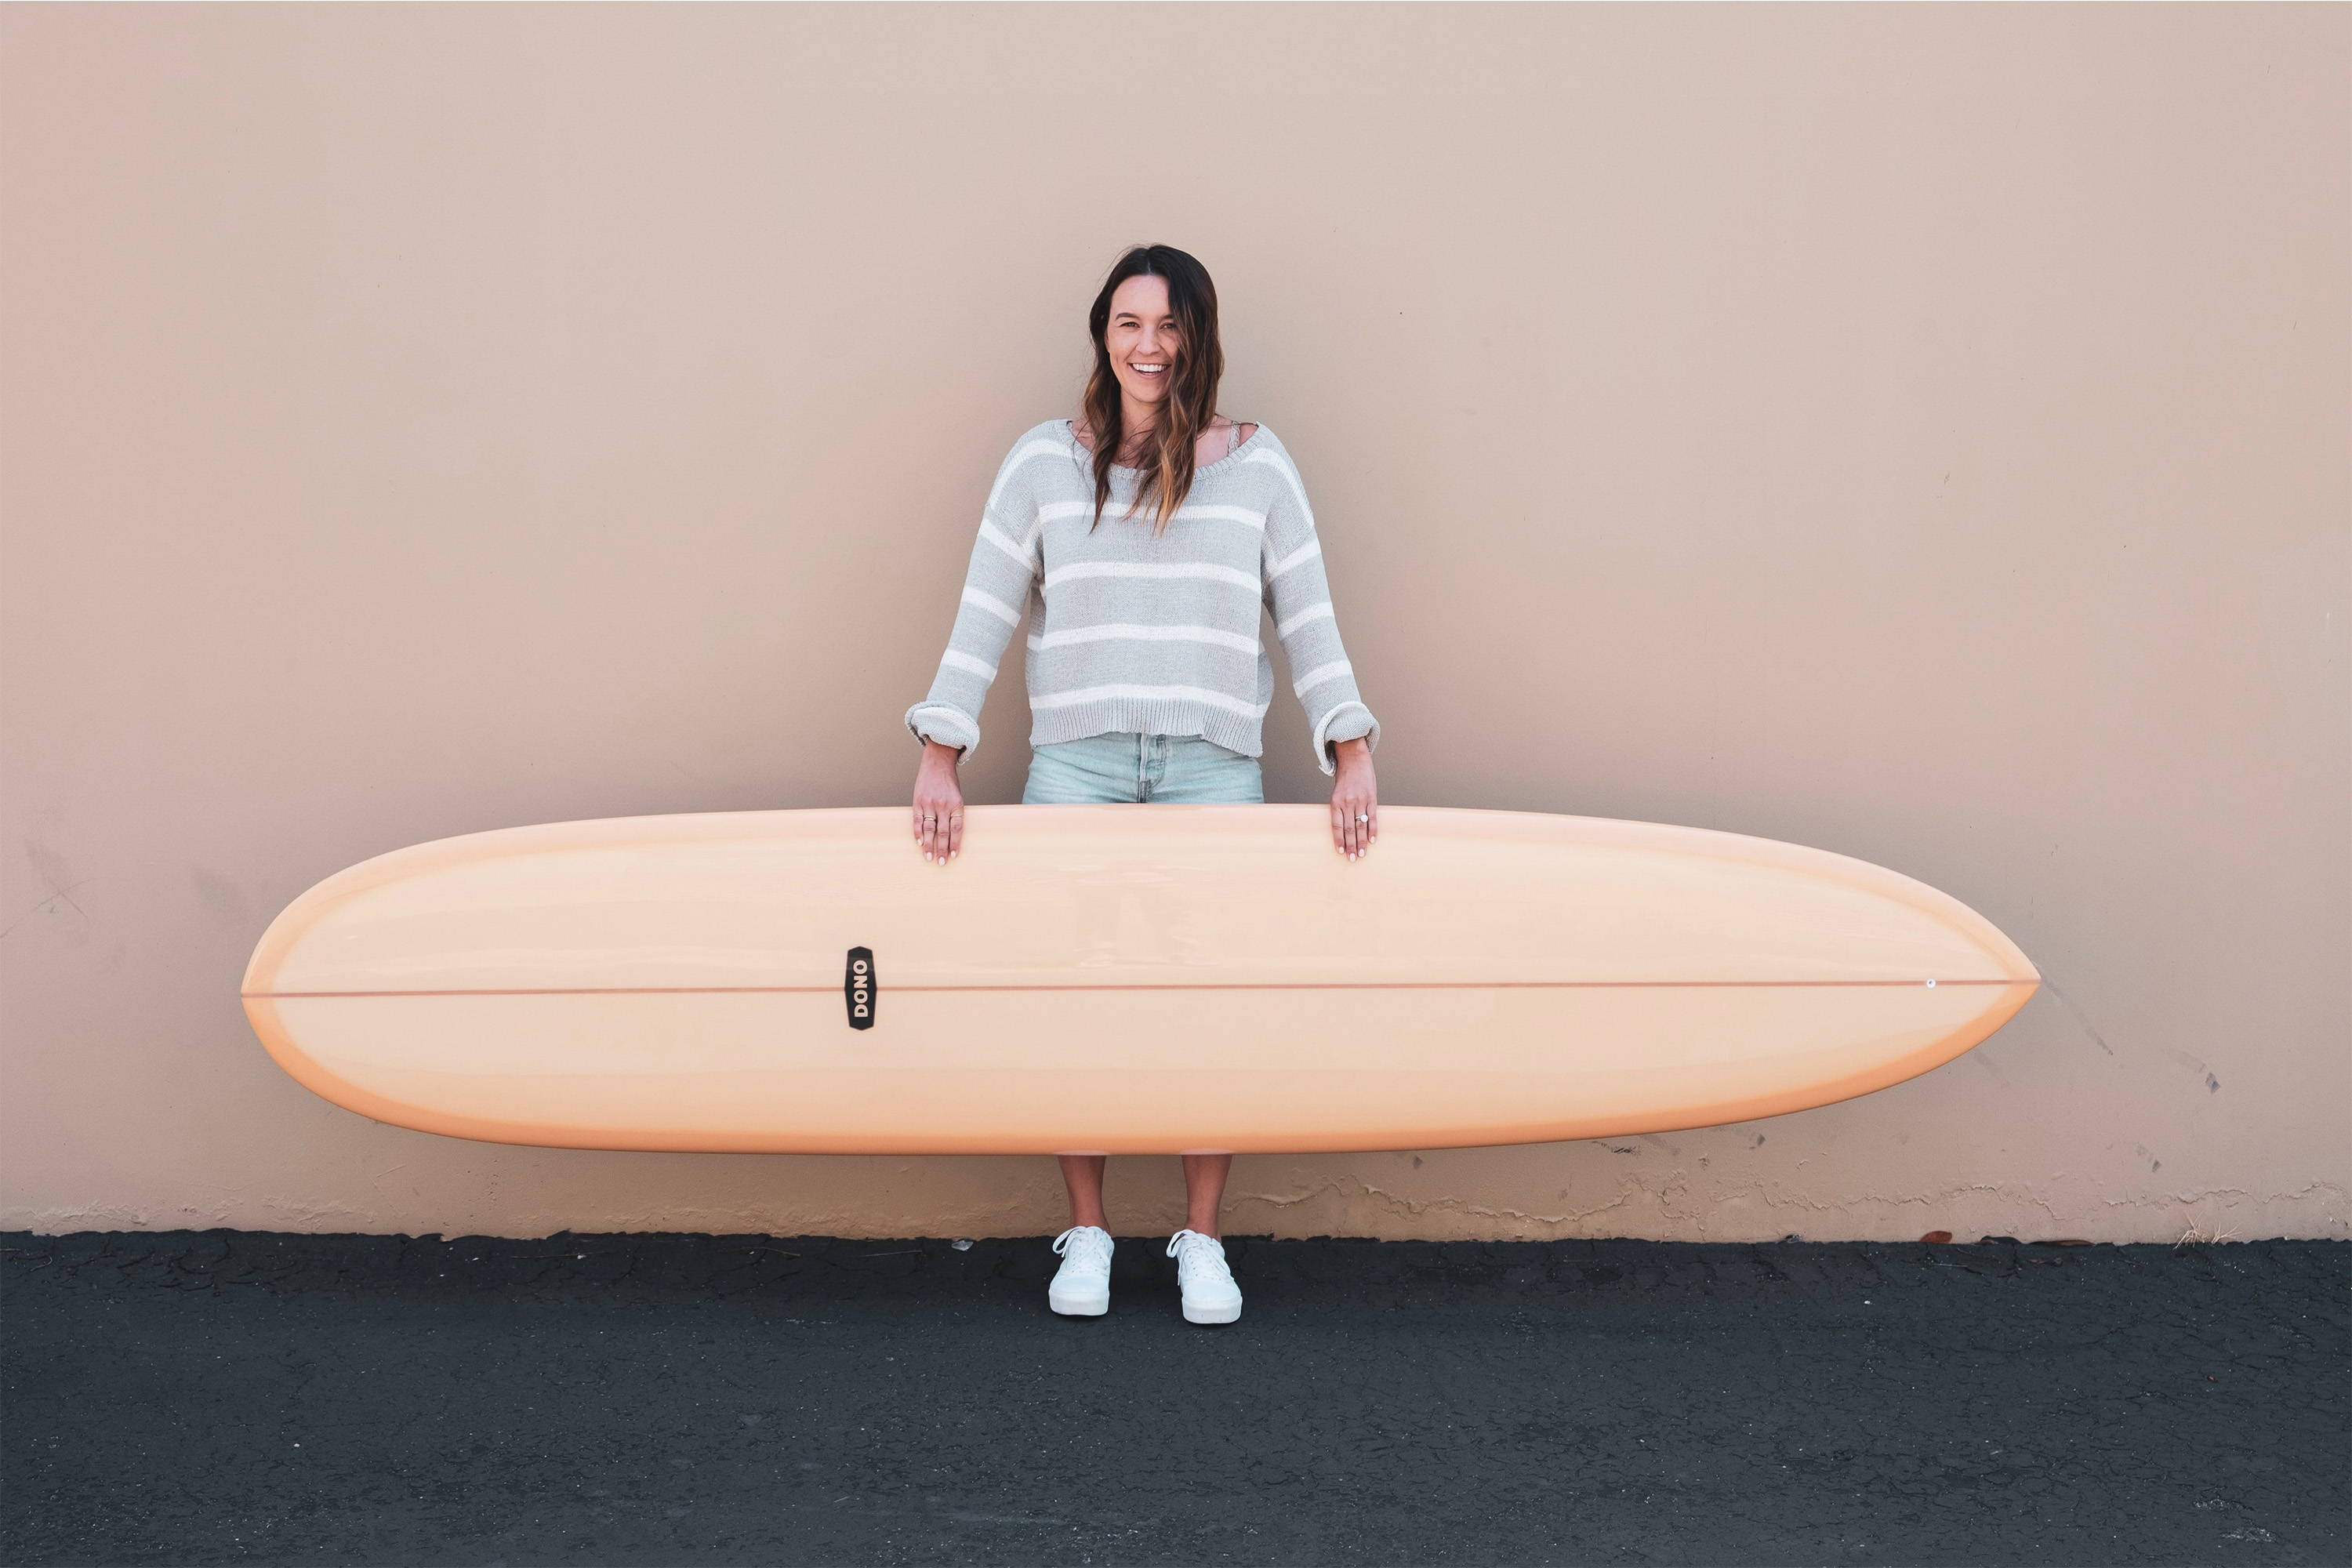 Surfer Girl Holding New Longboard Surfboard